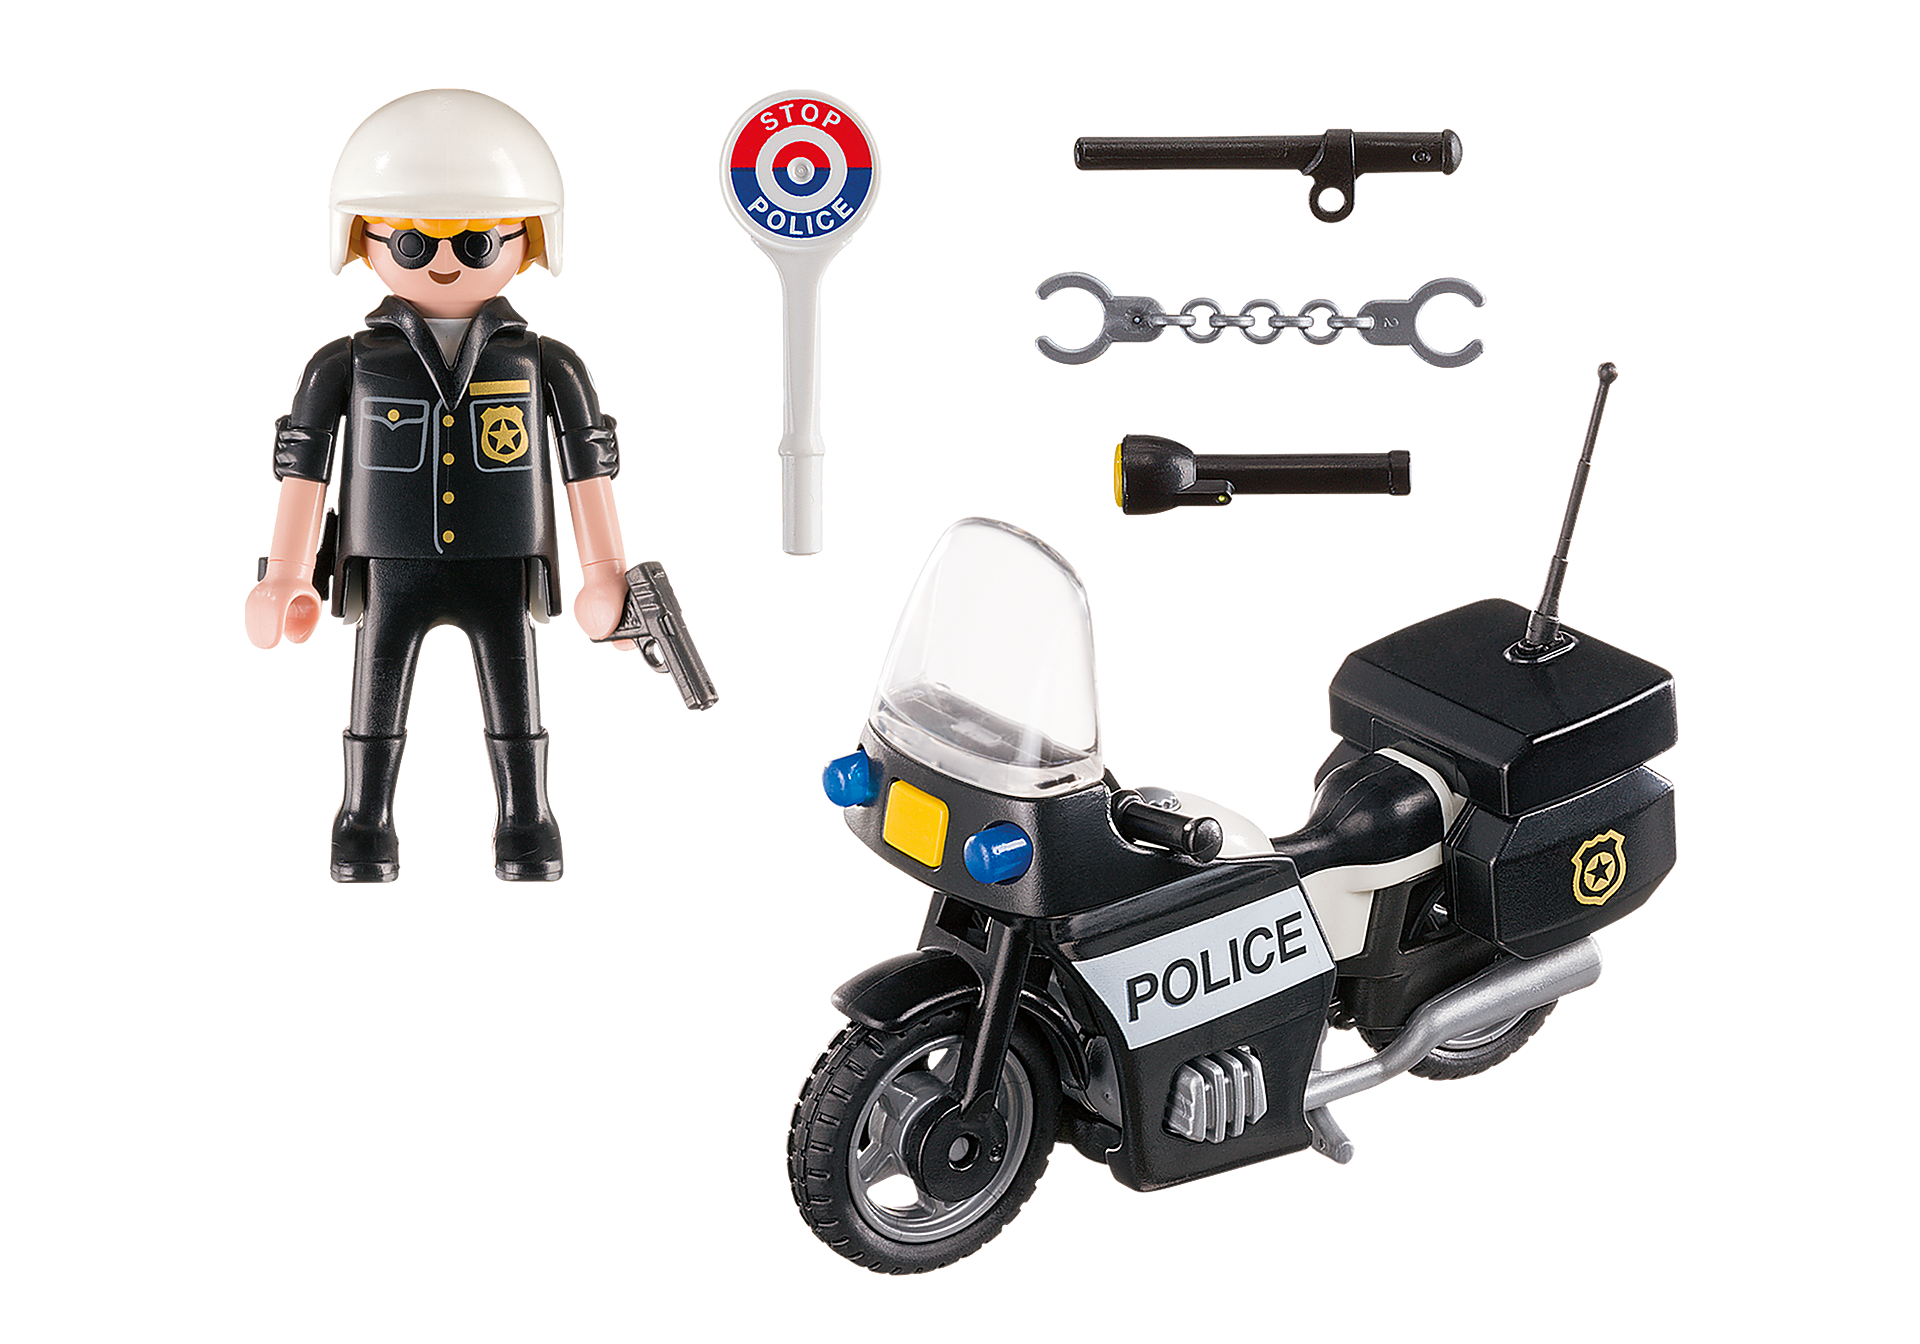 http://media.playmobil.com/i/playmobil/5648_product_box_back/Maletín 'Policía'